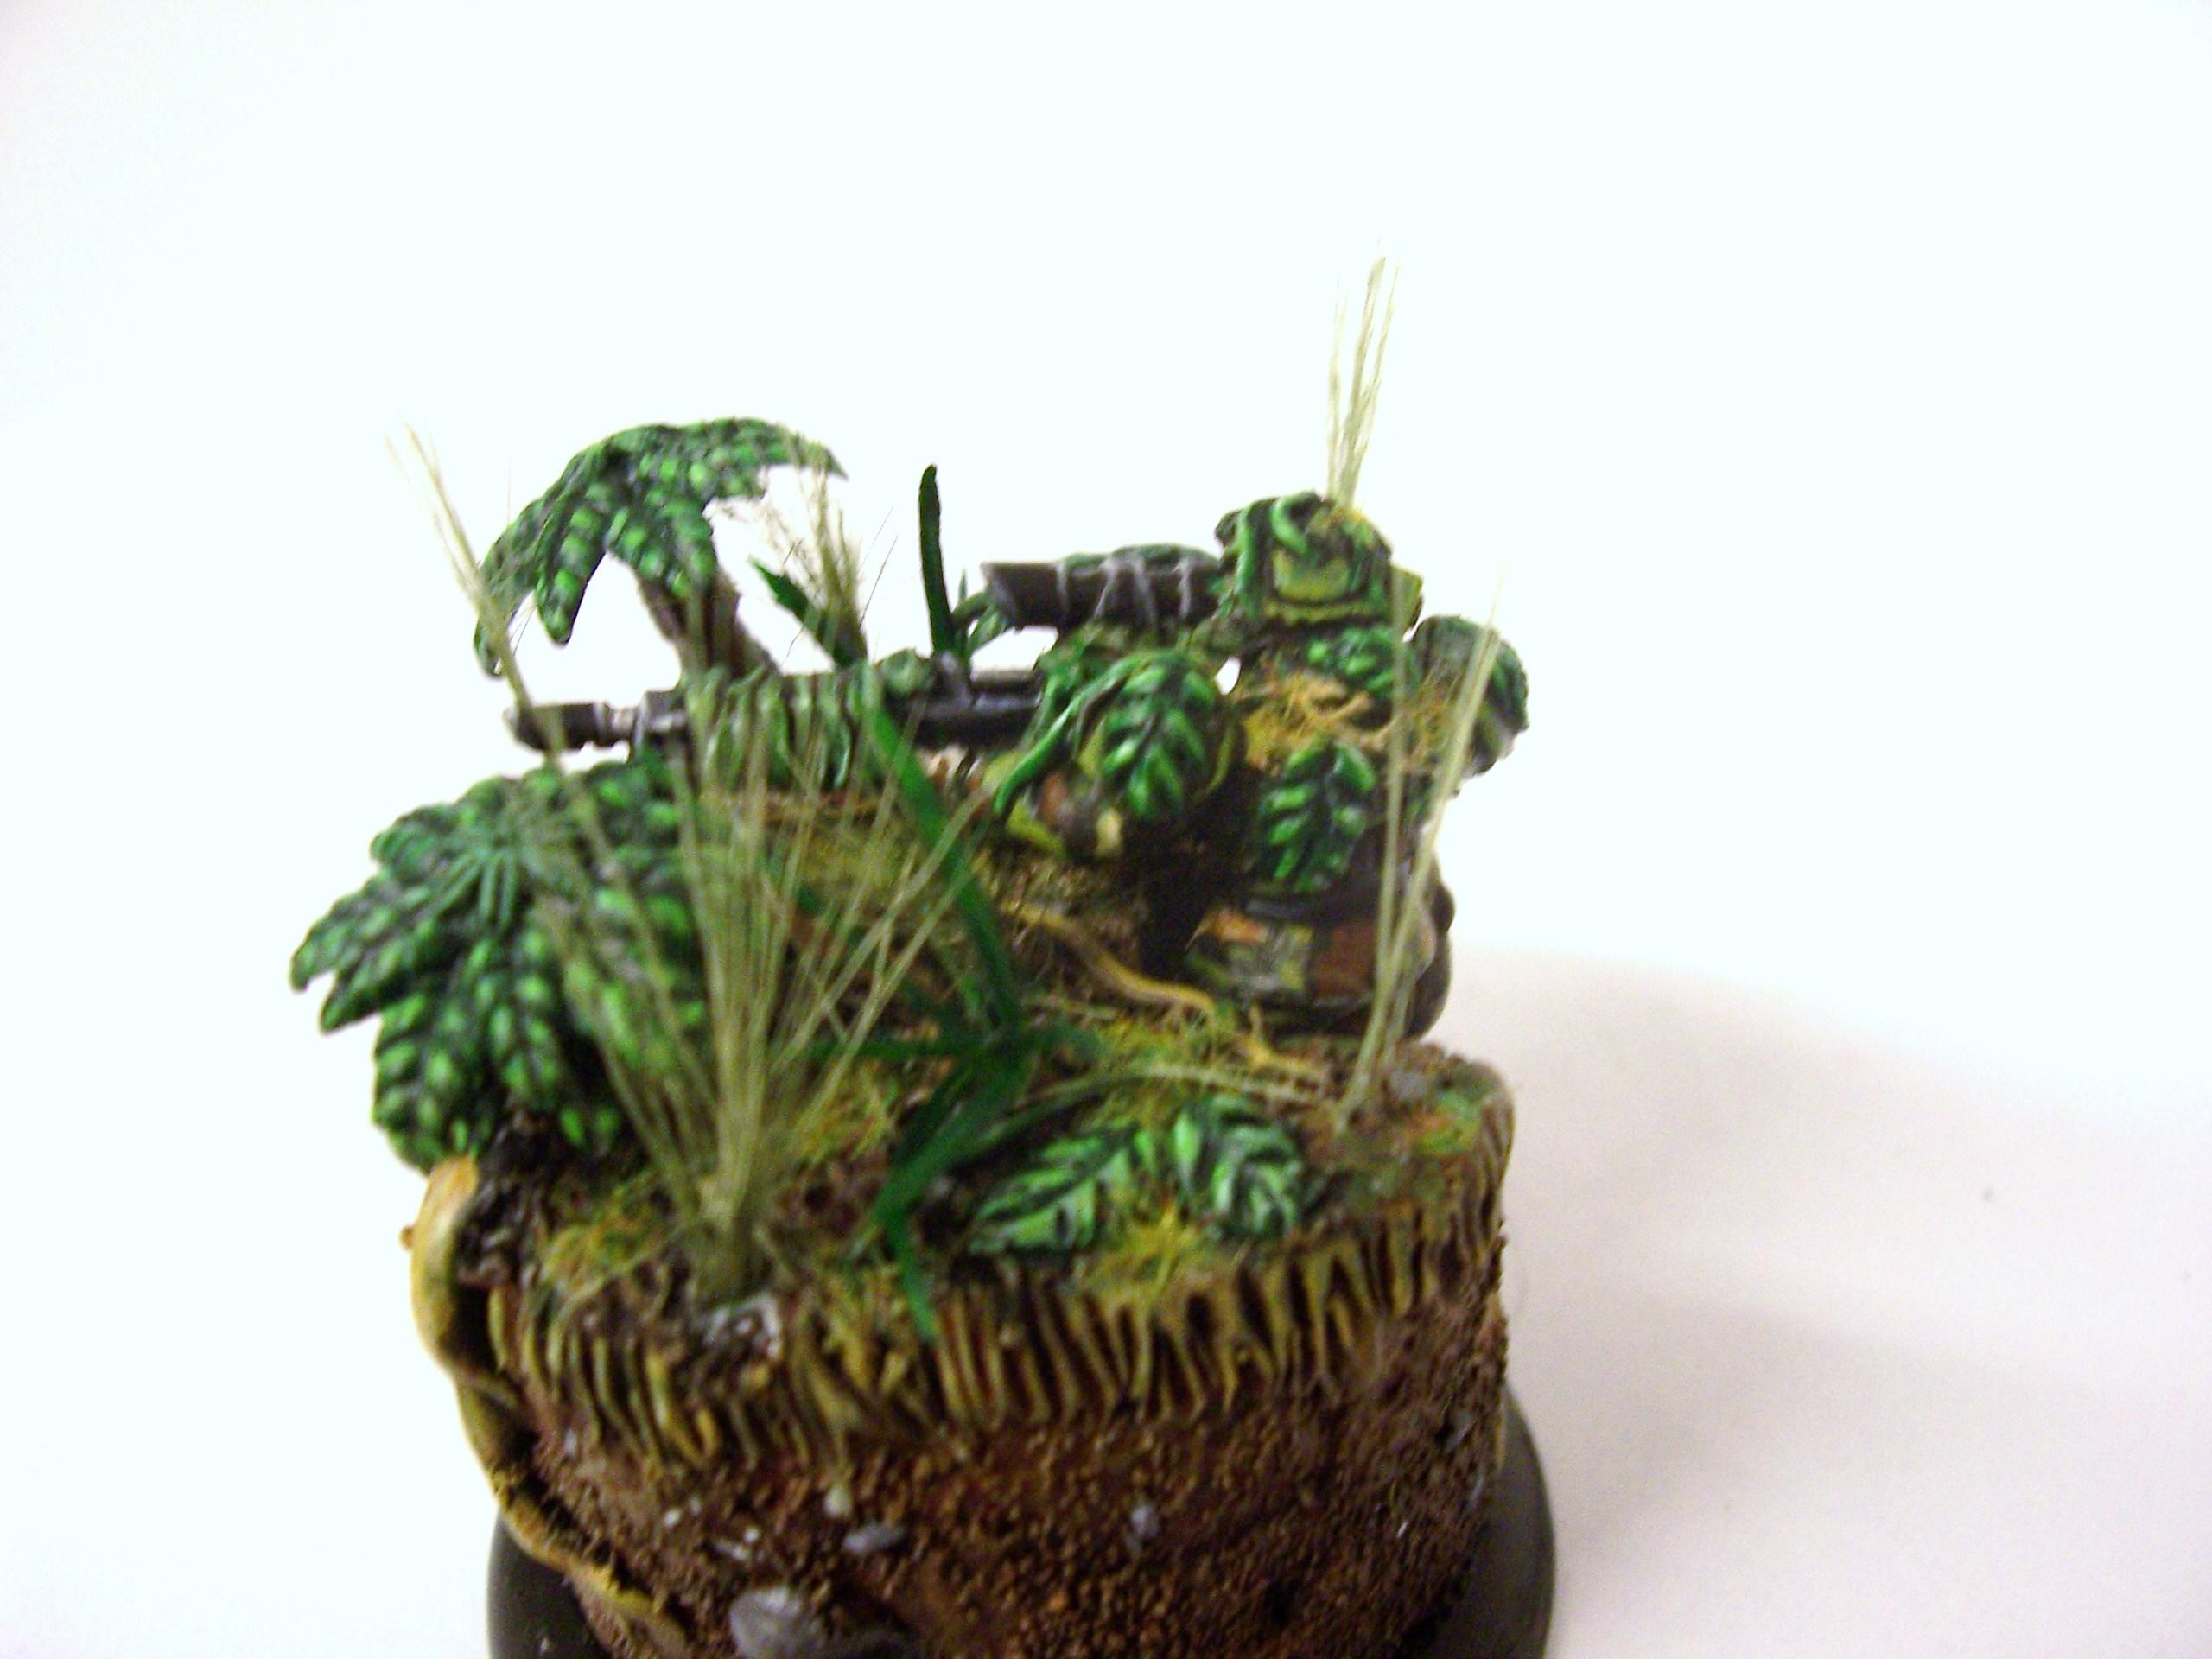 Imperial Guard, Jungle, Snipers, Warhammer 40,000